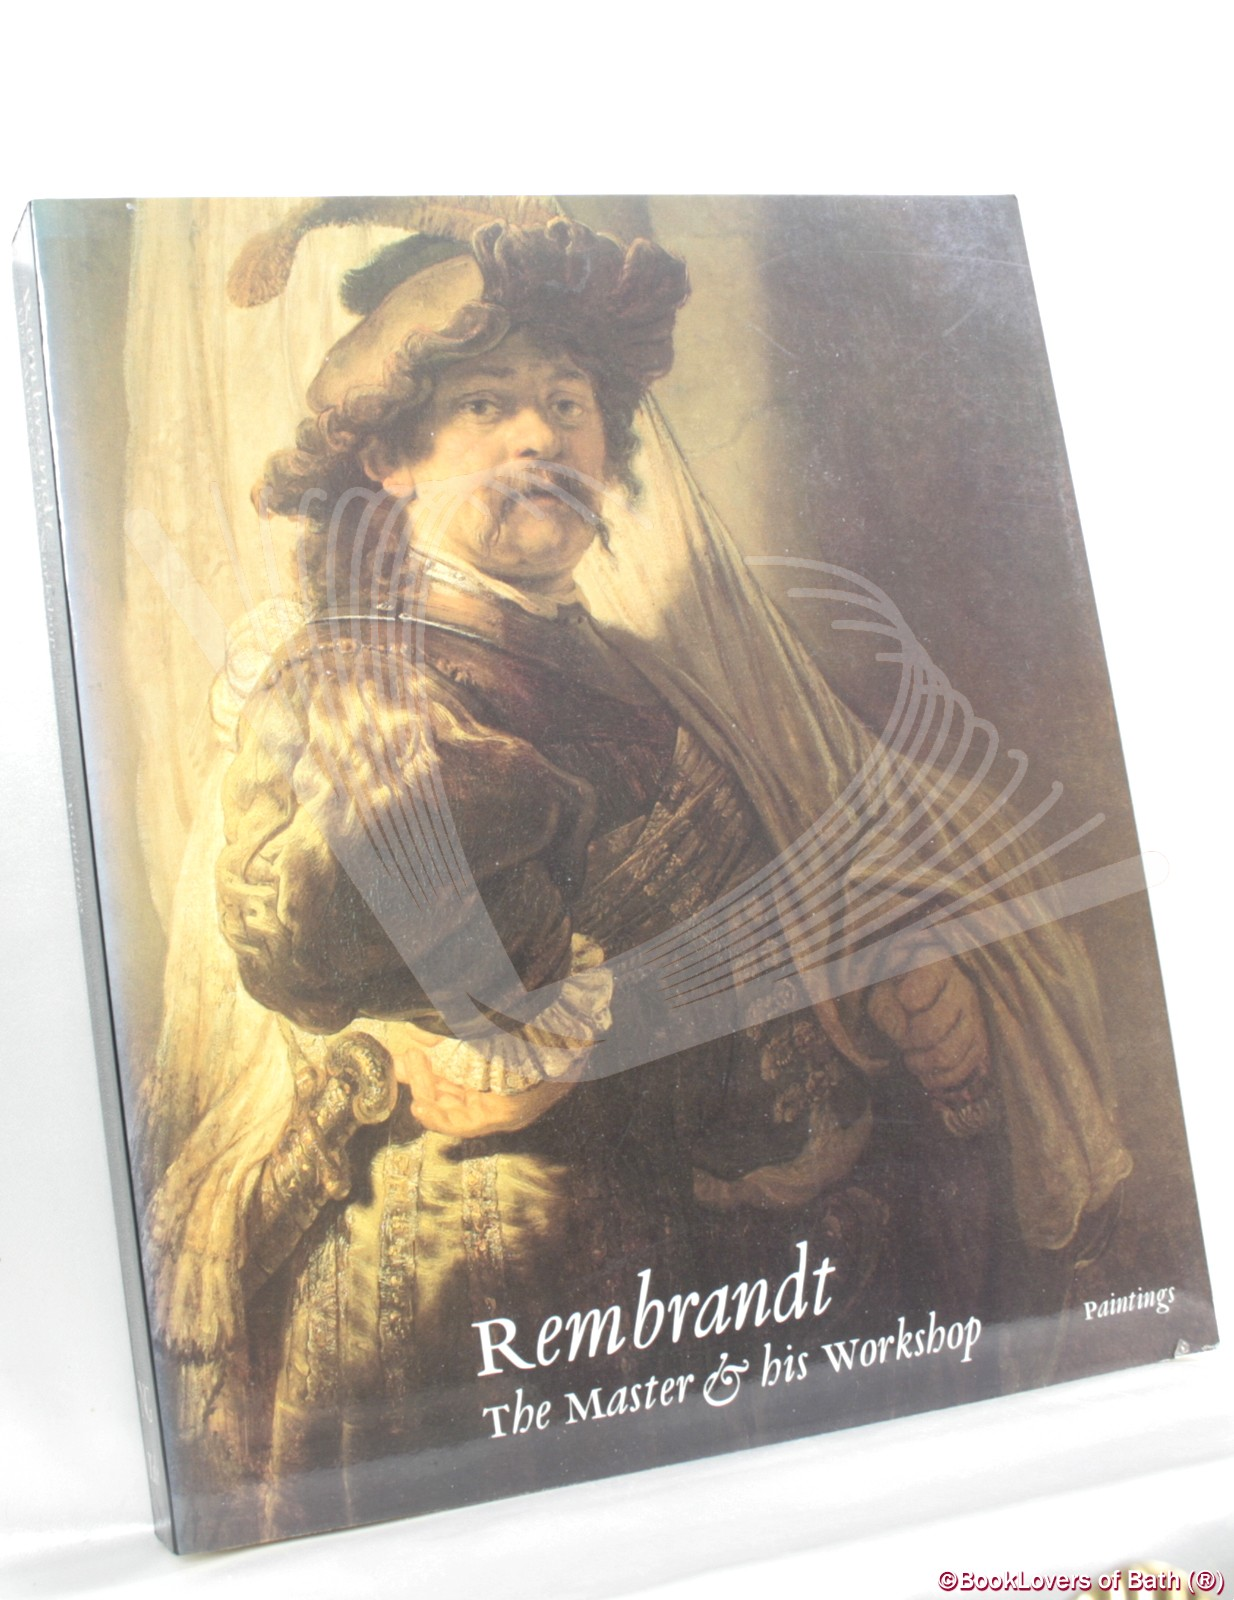 Rembrandt: The Master & His Workshop: Paintings - Jan Kelch